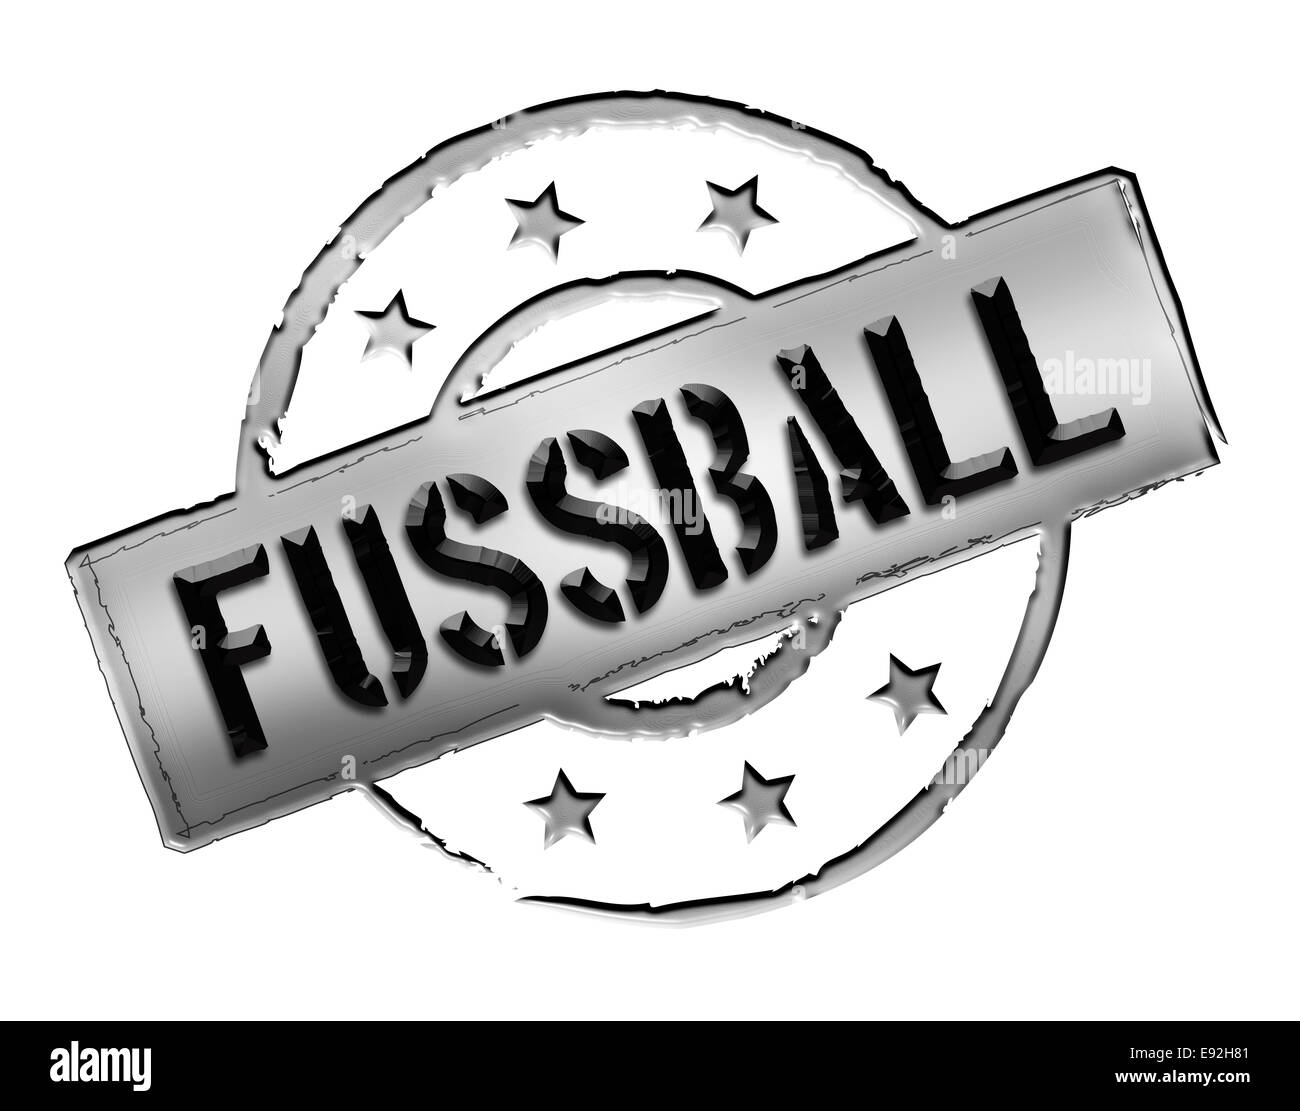 Stamp - FUSSBALL - Stock Image